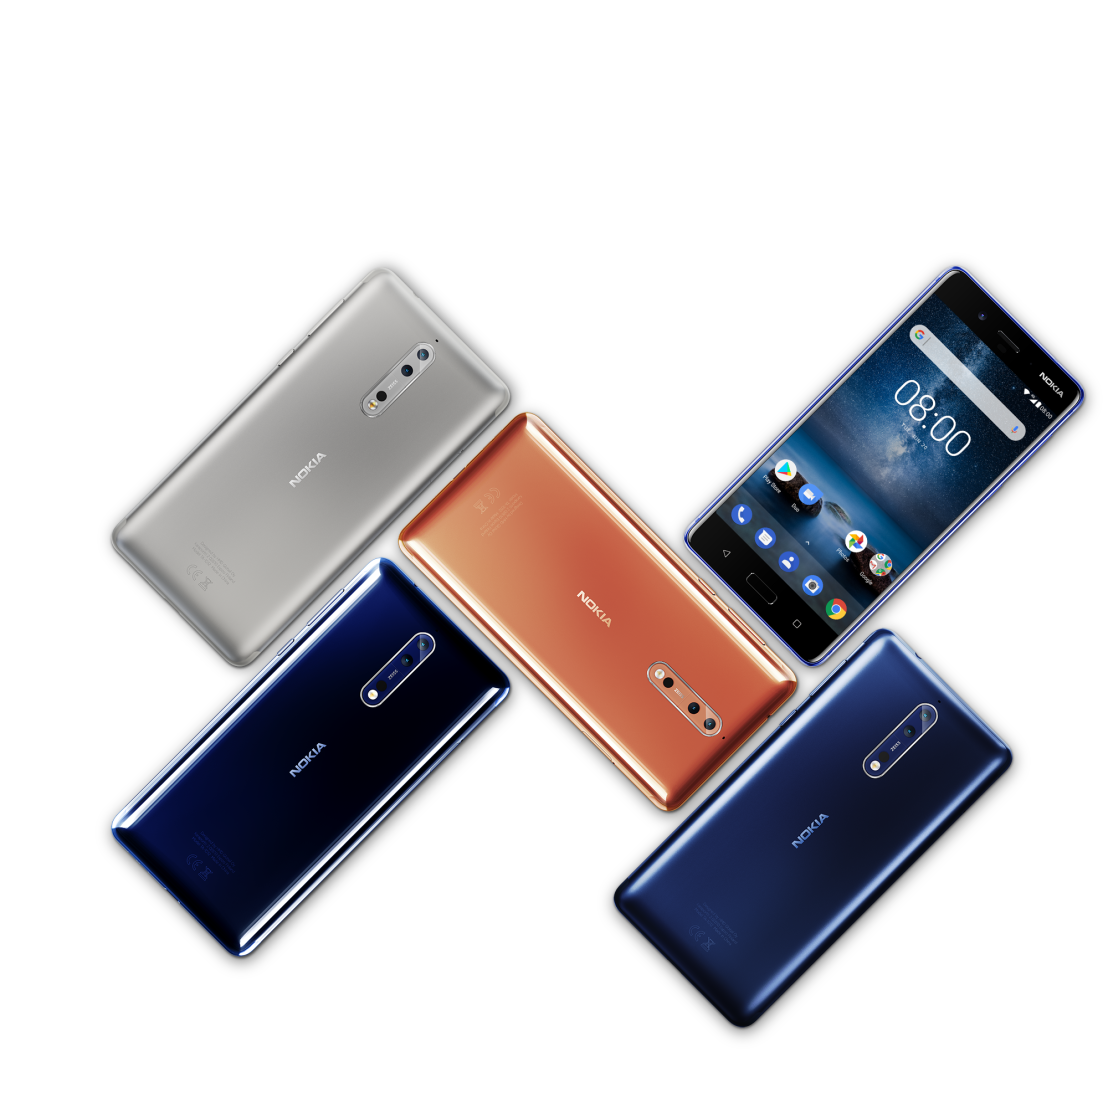 New Innovations and collaborations for Nokia8